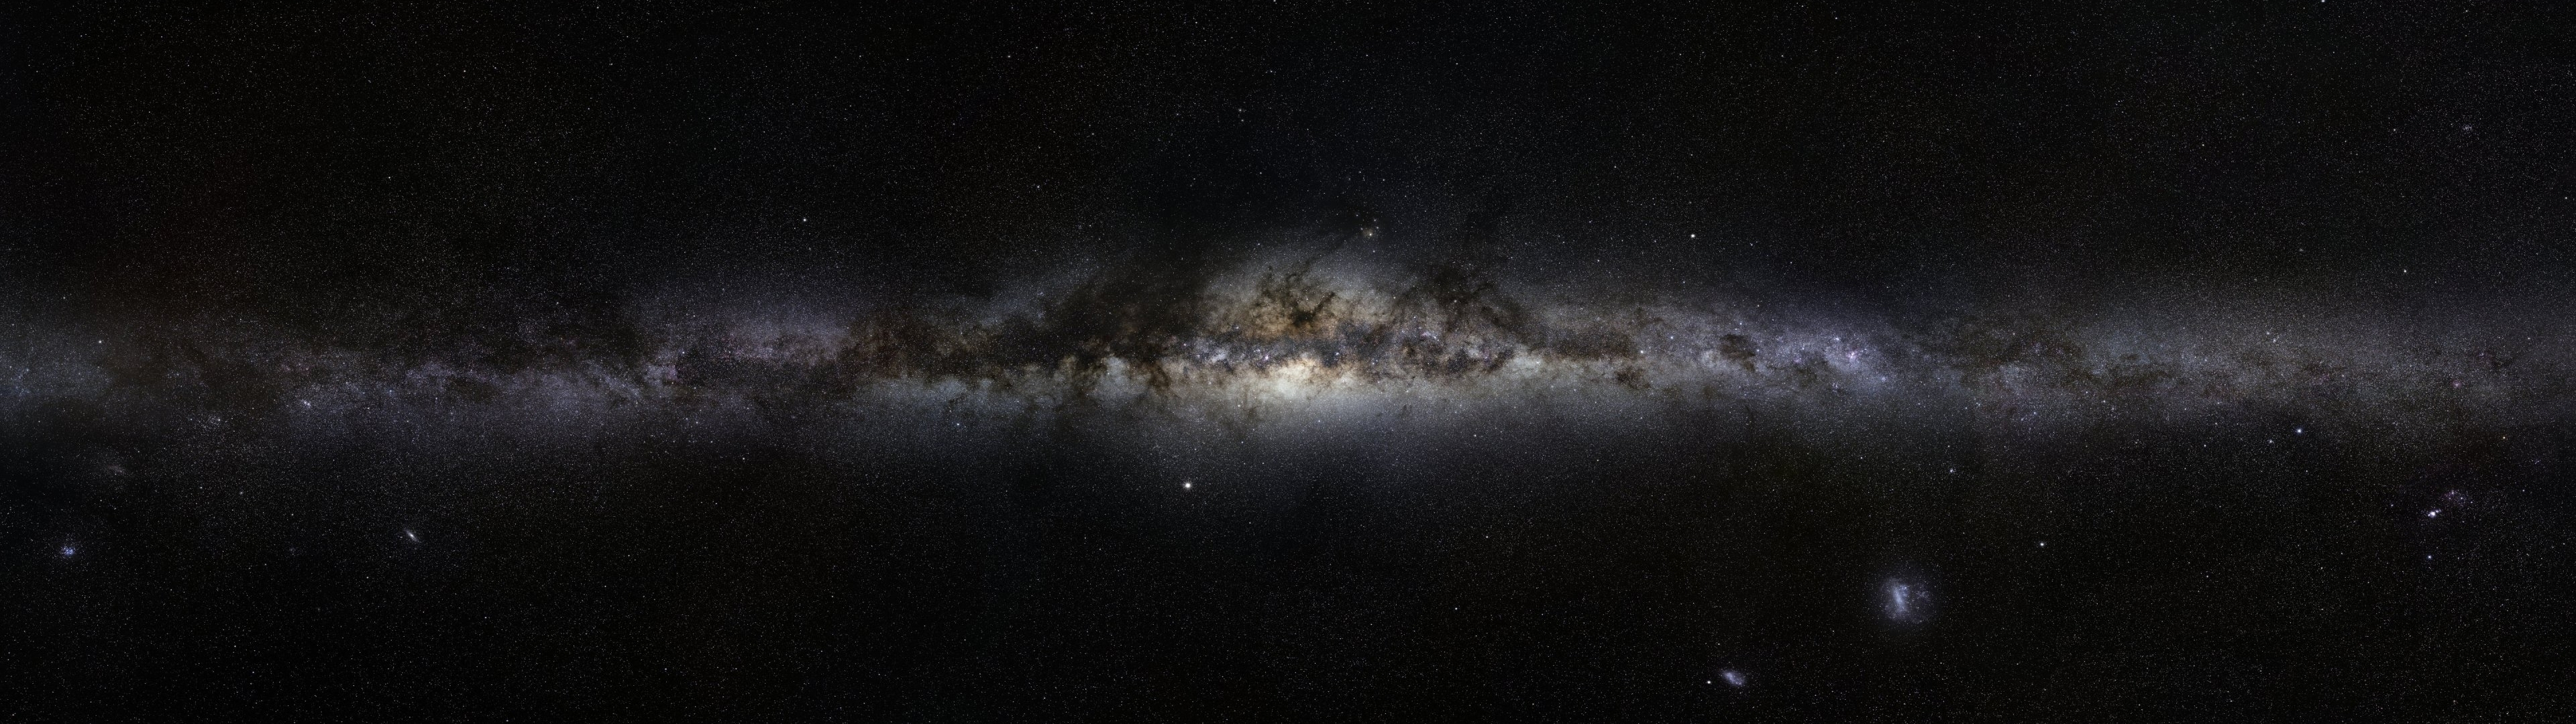 galaxy dual screen wallpaper | 3840x1080 | id:43352